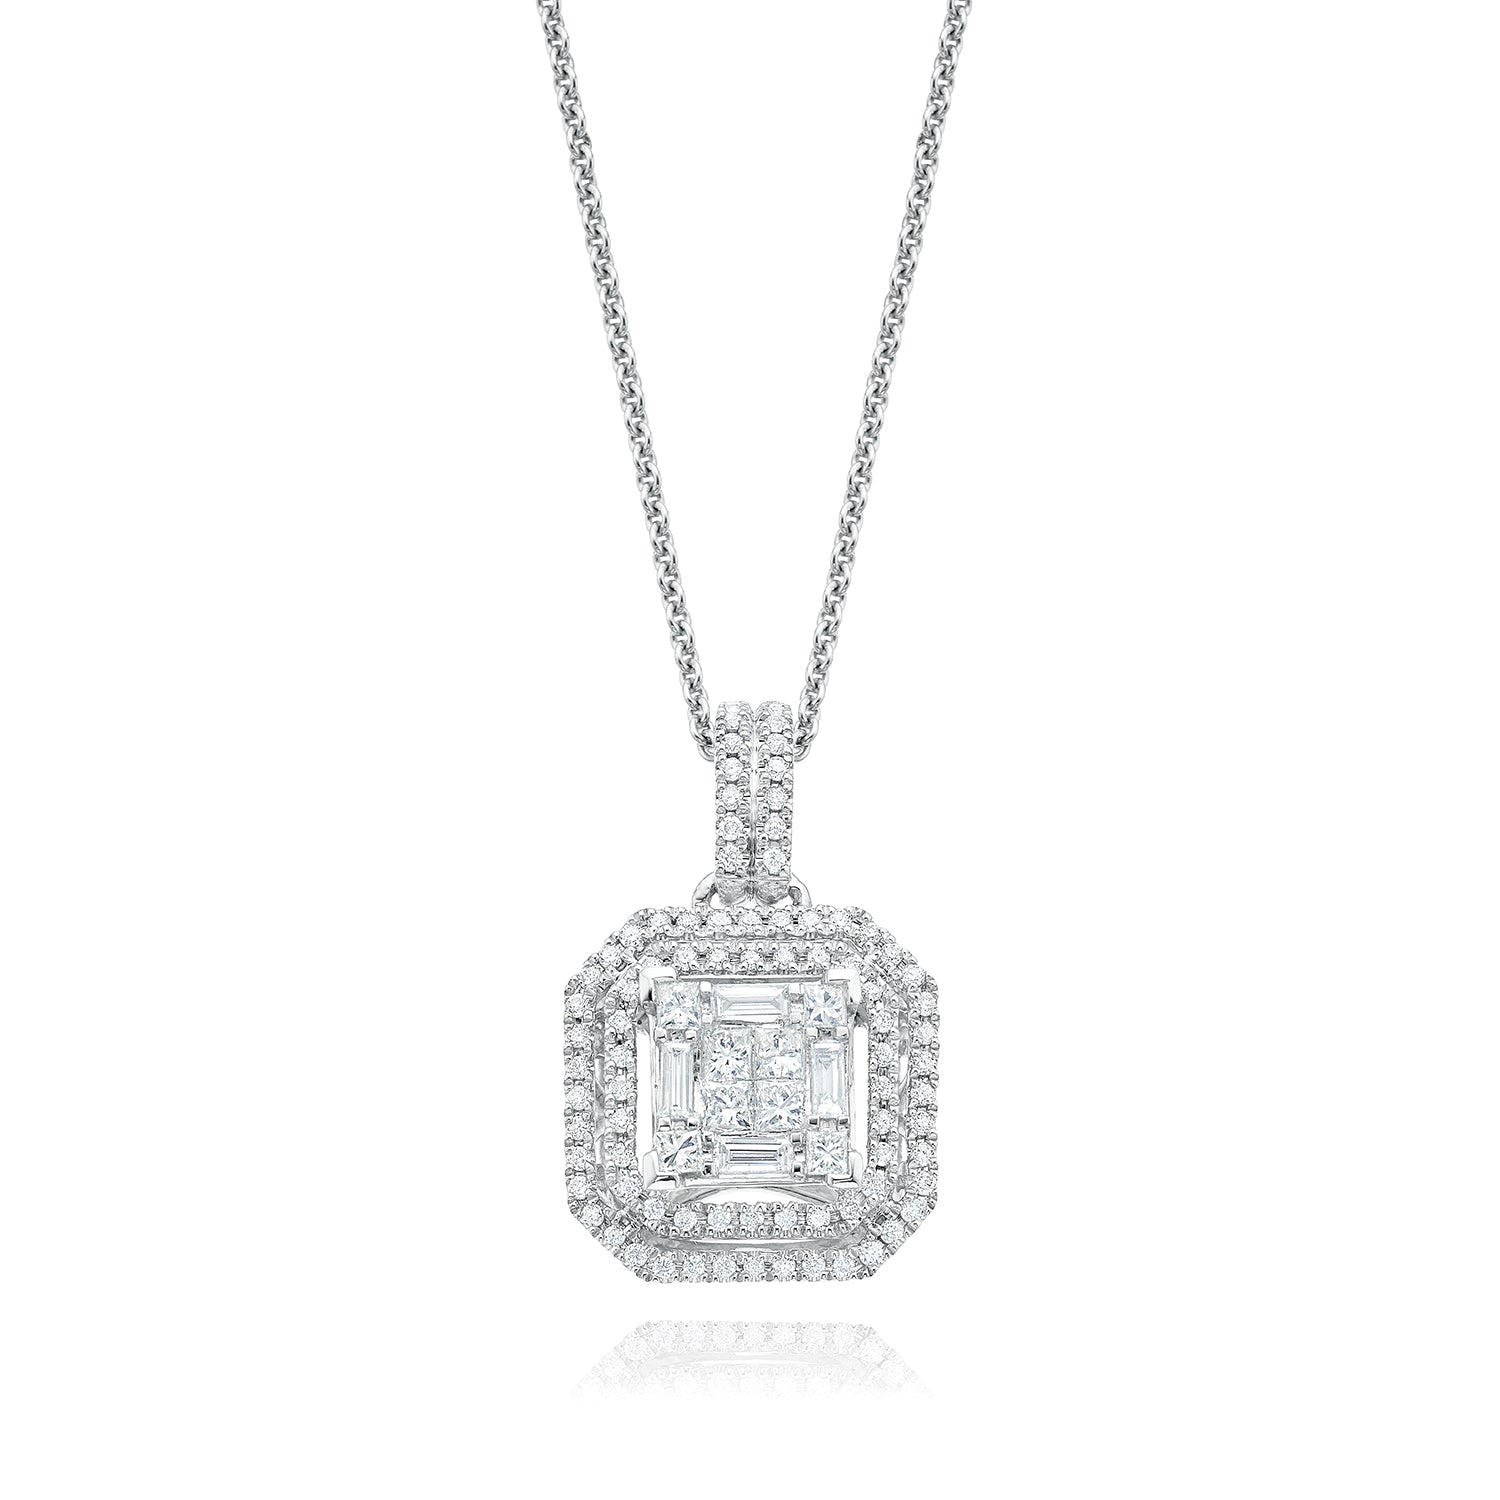 9ct White Gold Princess, Round Brilliant & Baguette Cut with 1/2 CARAT tw of Diamond Pendant